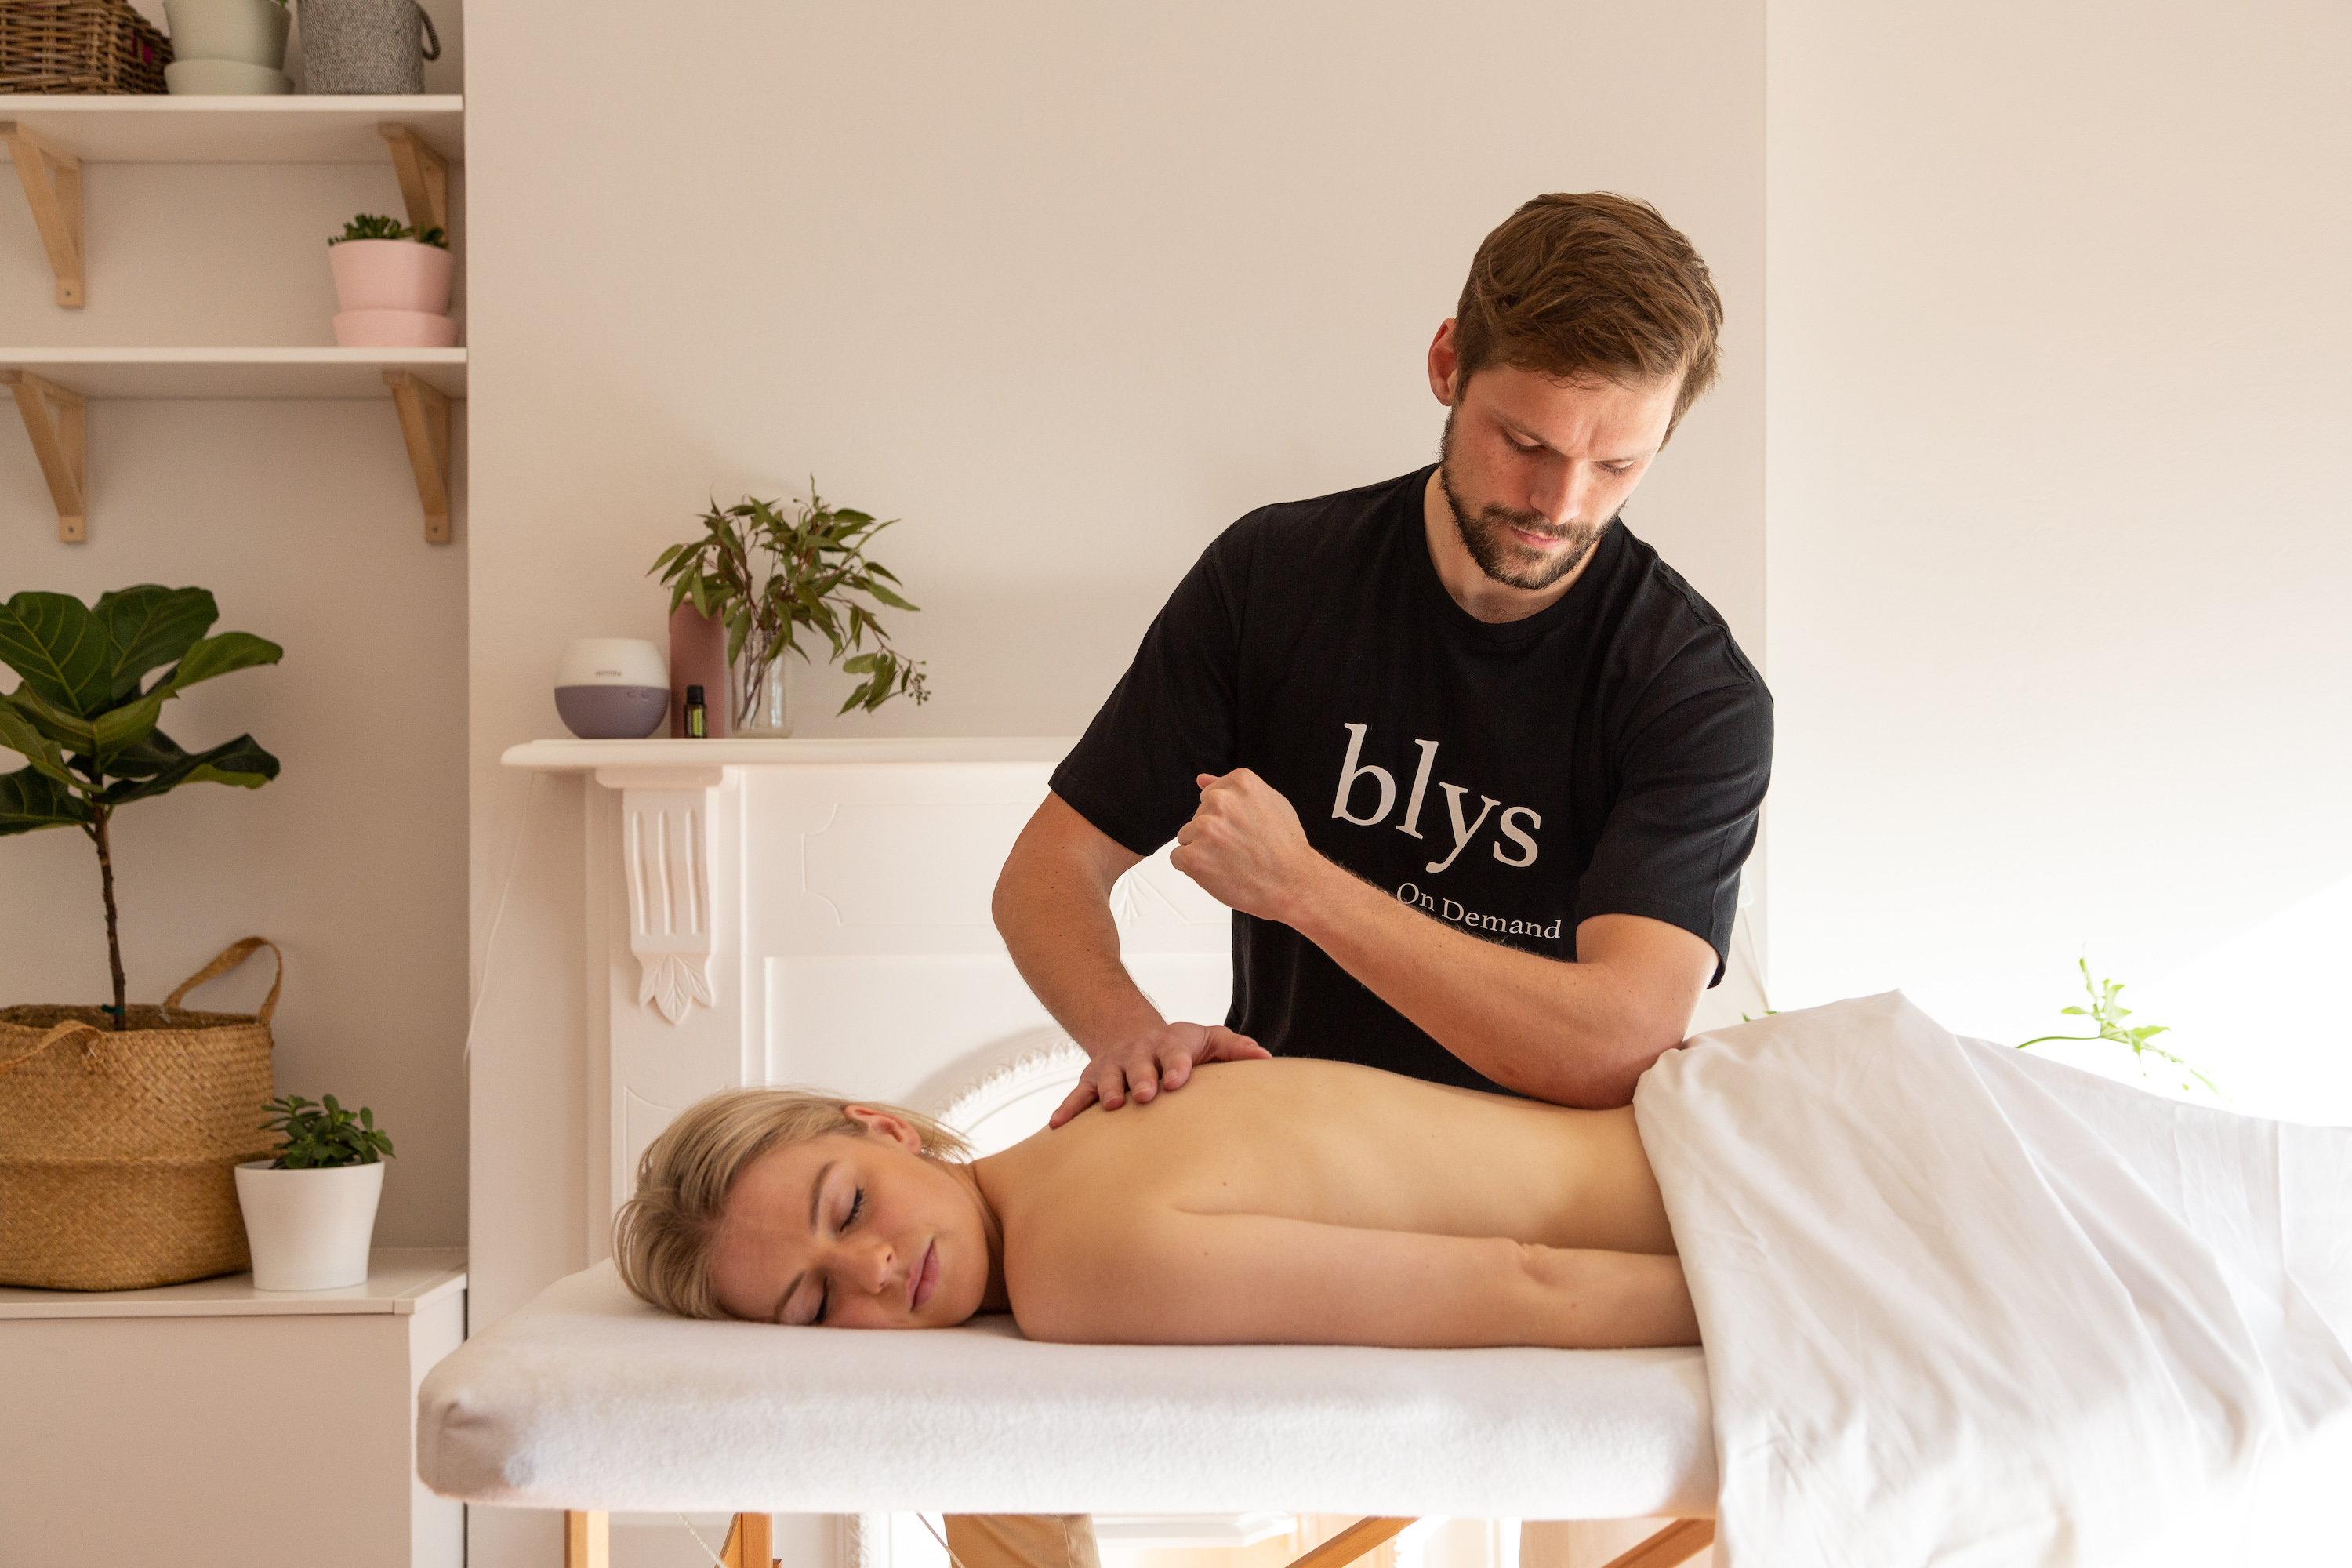 Deep Tissue Vs Relaxation Massage - What's The Difference?